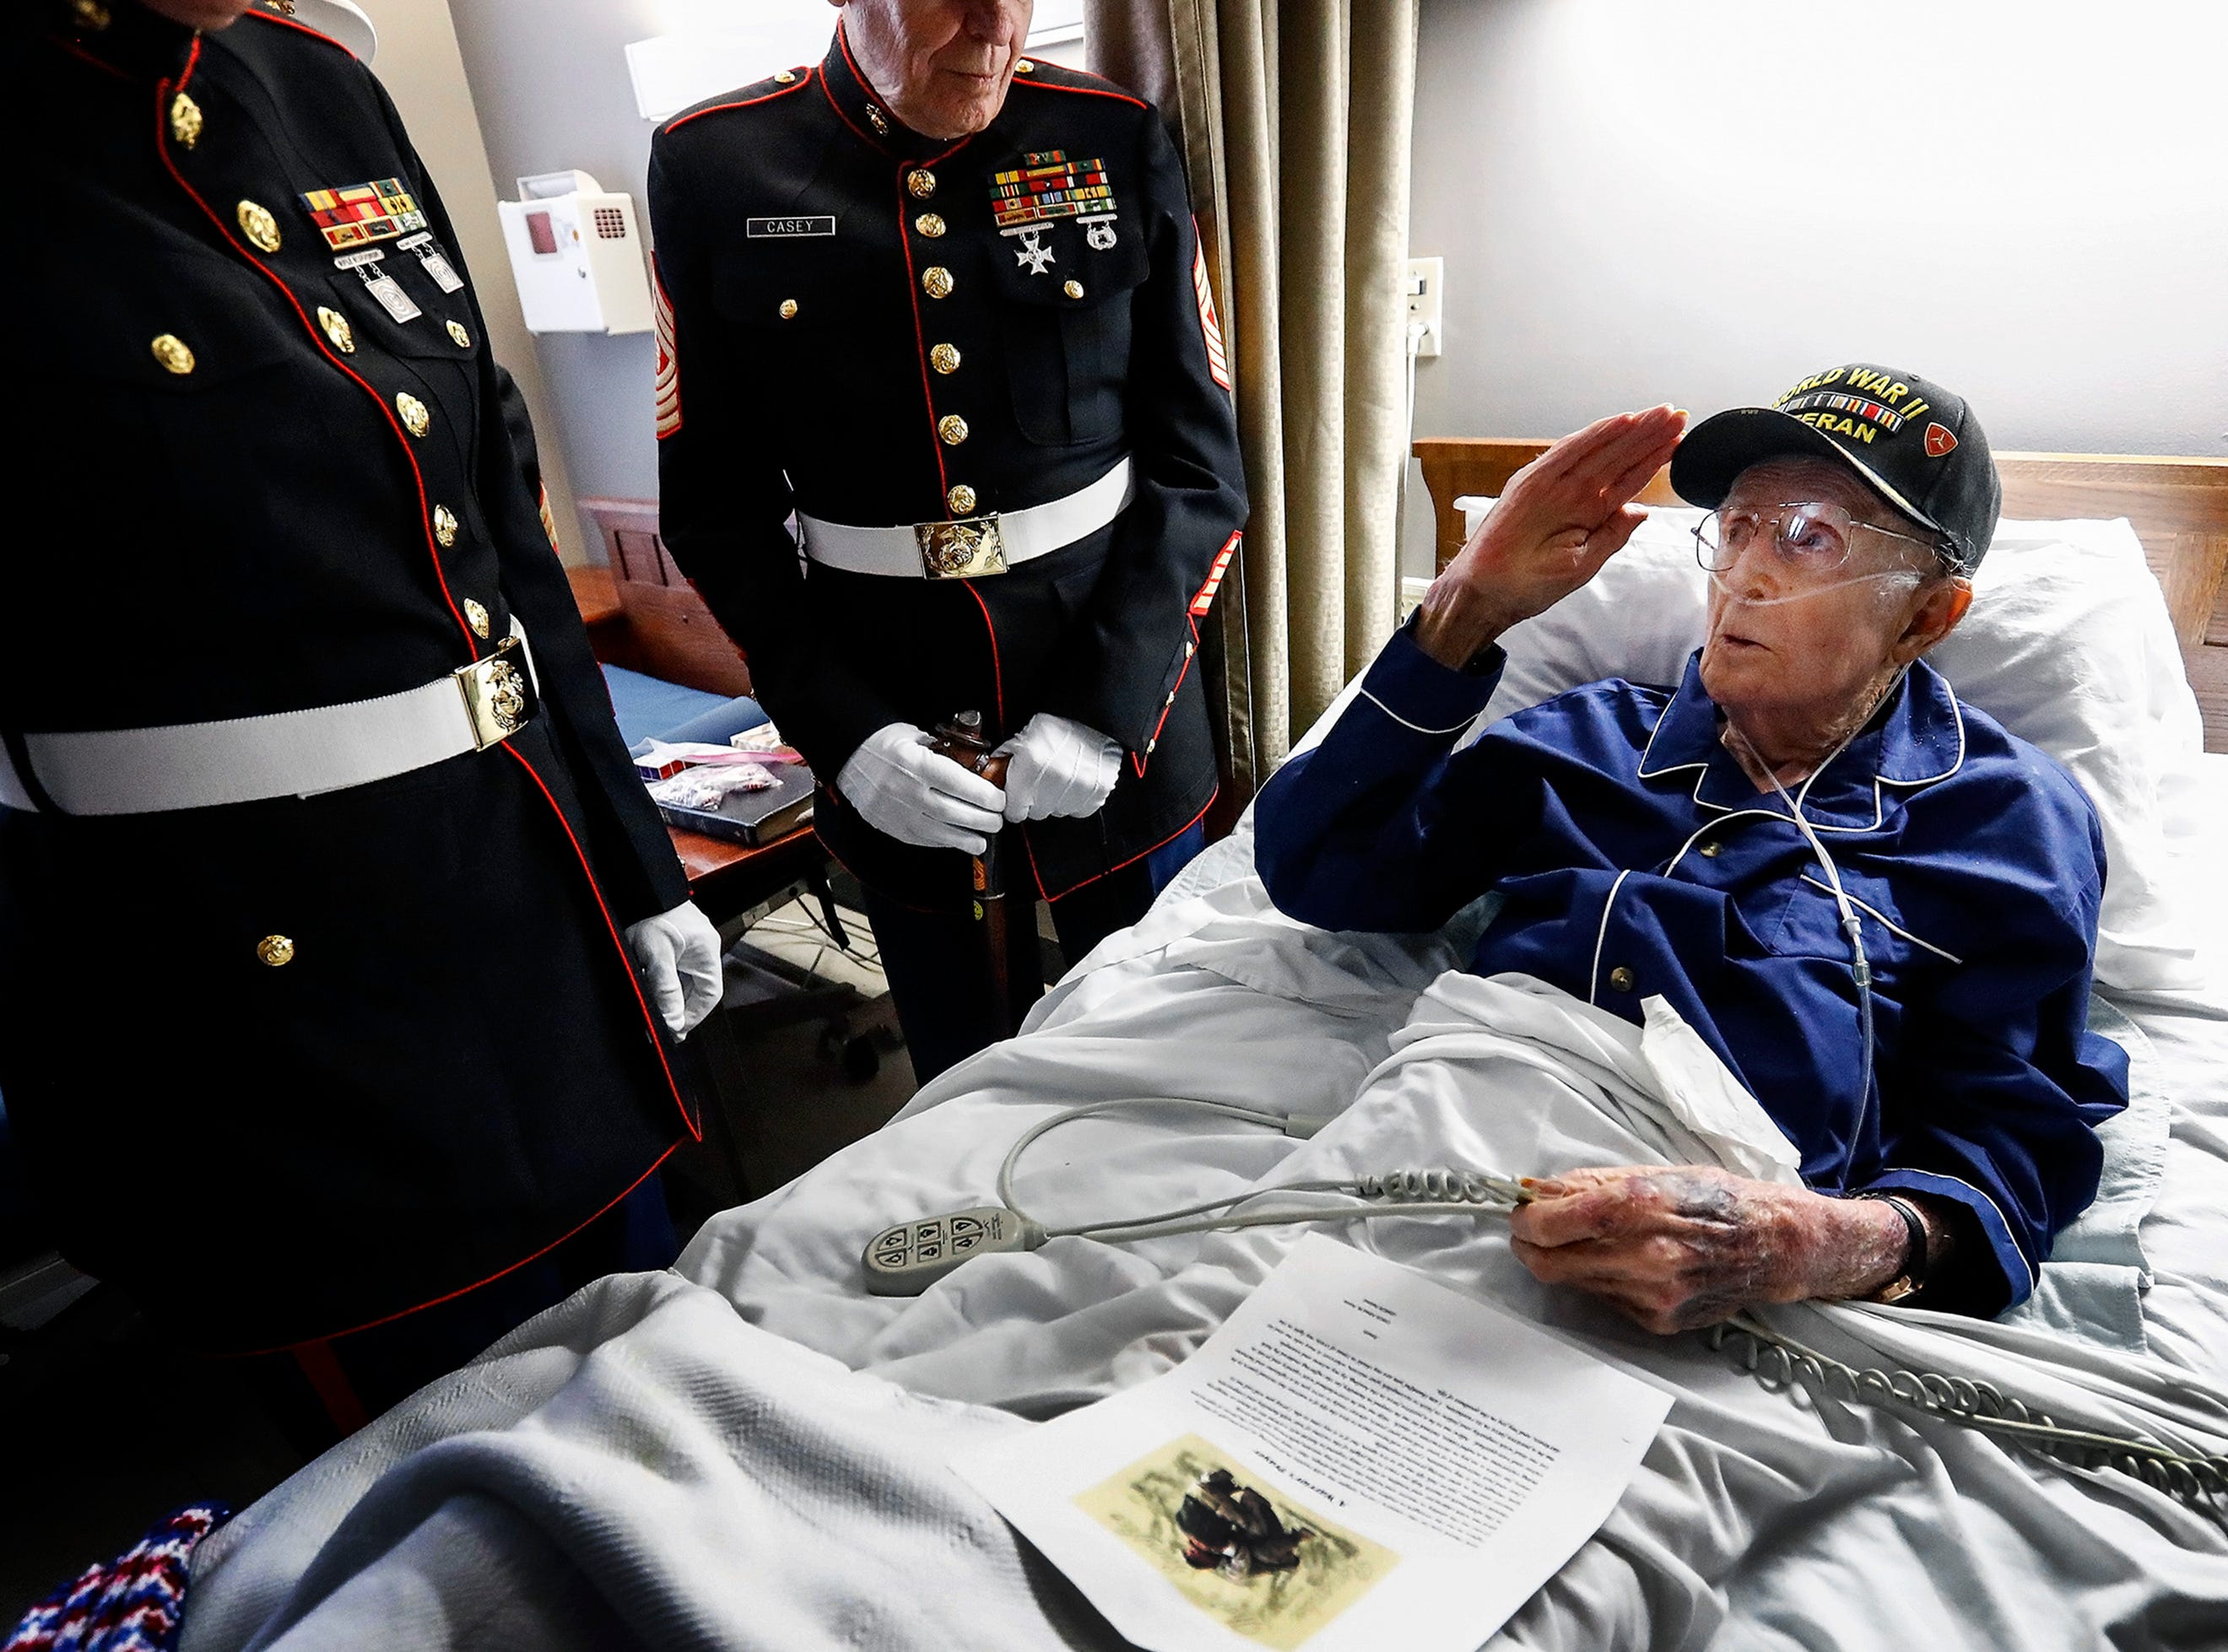 """Pfc. Robert """"Buck"""" Arata, 95, salutes fellow Marines who visited him at the Applingwood Healthcare Center, an assisted-living home where he now lives. Arata, who will celebrate his 96th birthday in late March is the Mid-South's last surviving marine to fight in The Battle of Iwo Jima during World War II. As part of the 9th Marine Regiment, Arata, landed on Iwo Jima's beaches three-days after D-Day on Feb. 22, 1945."""